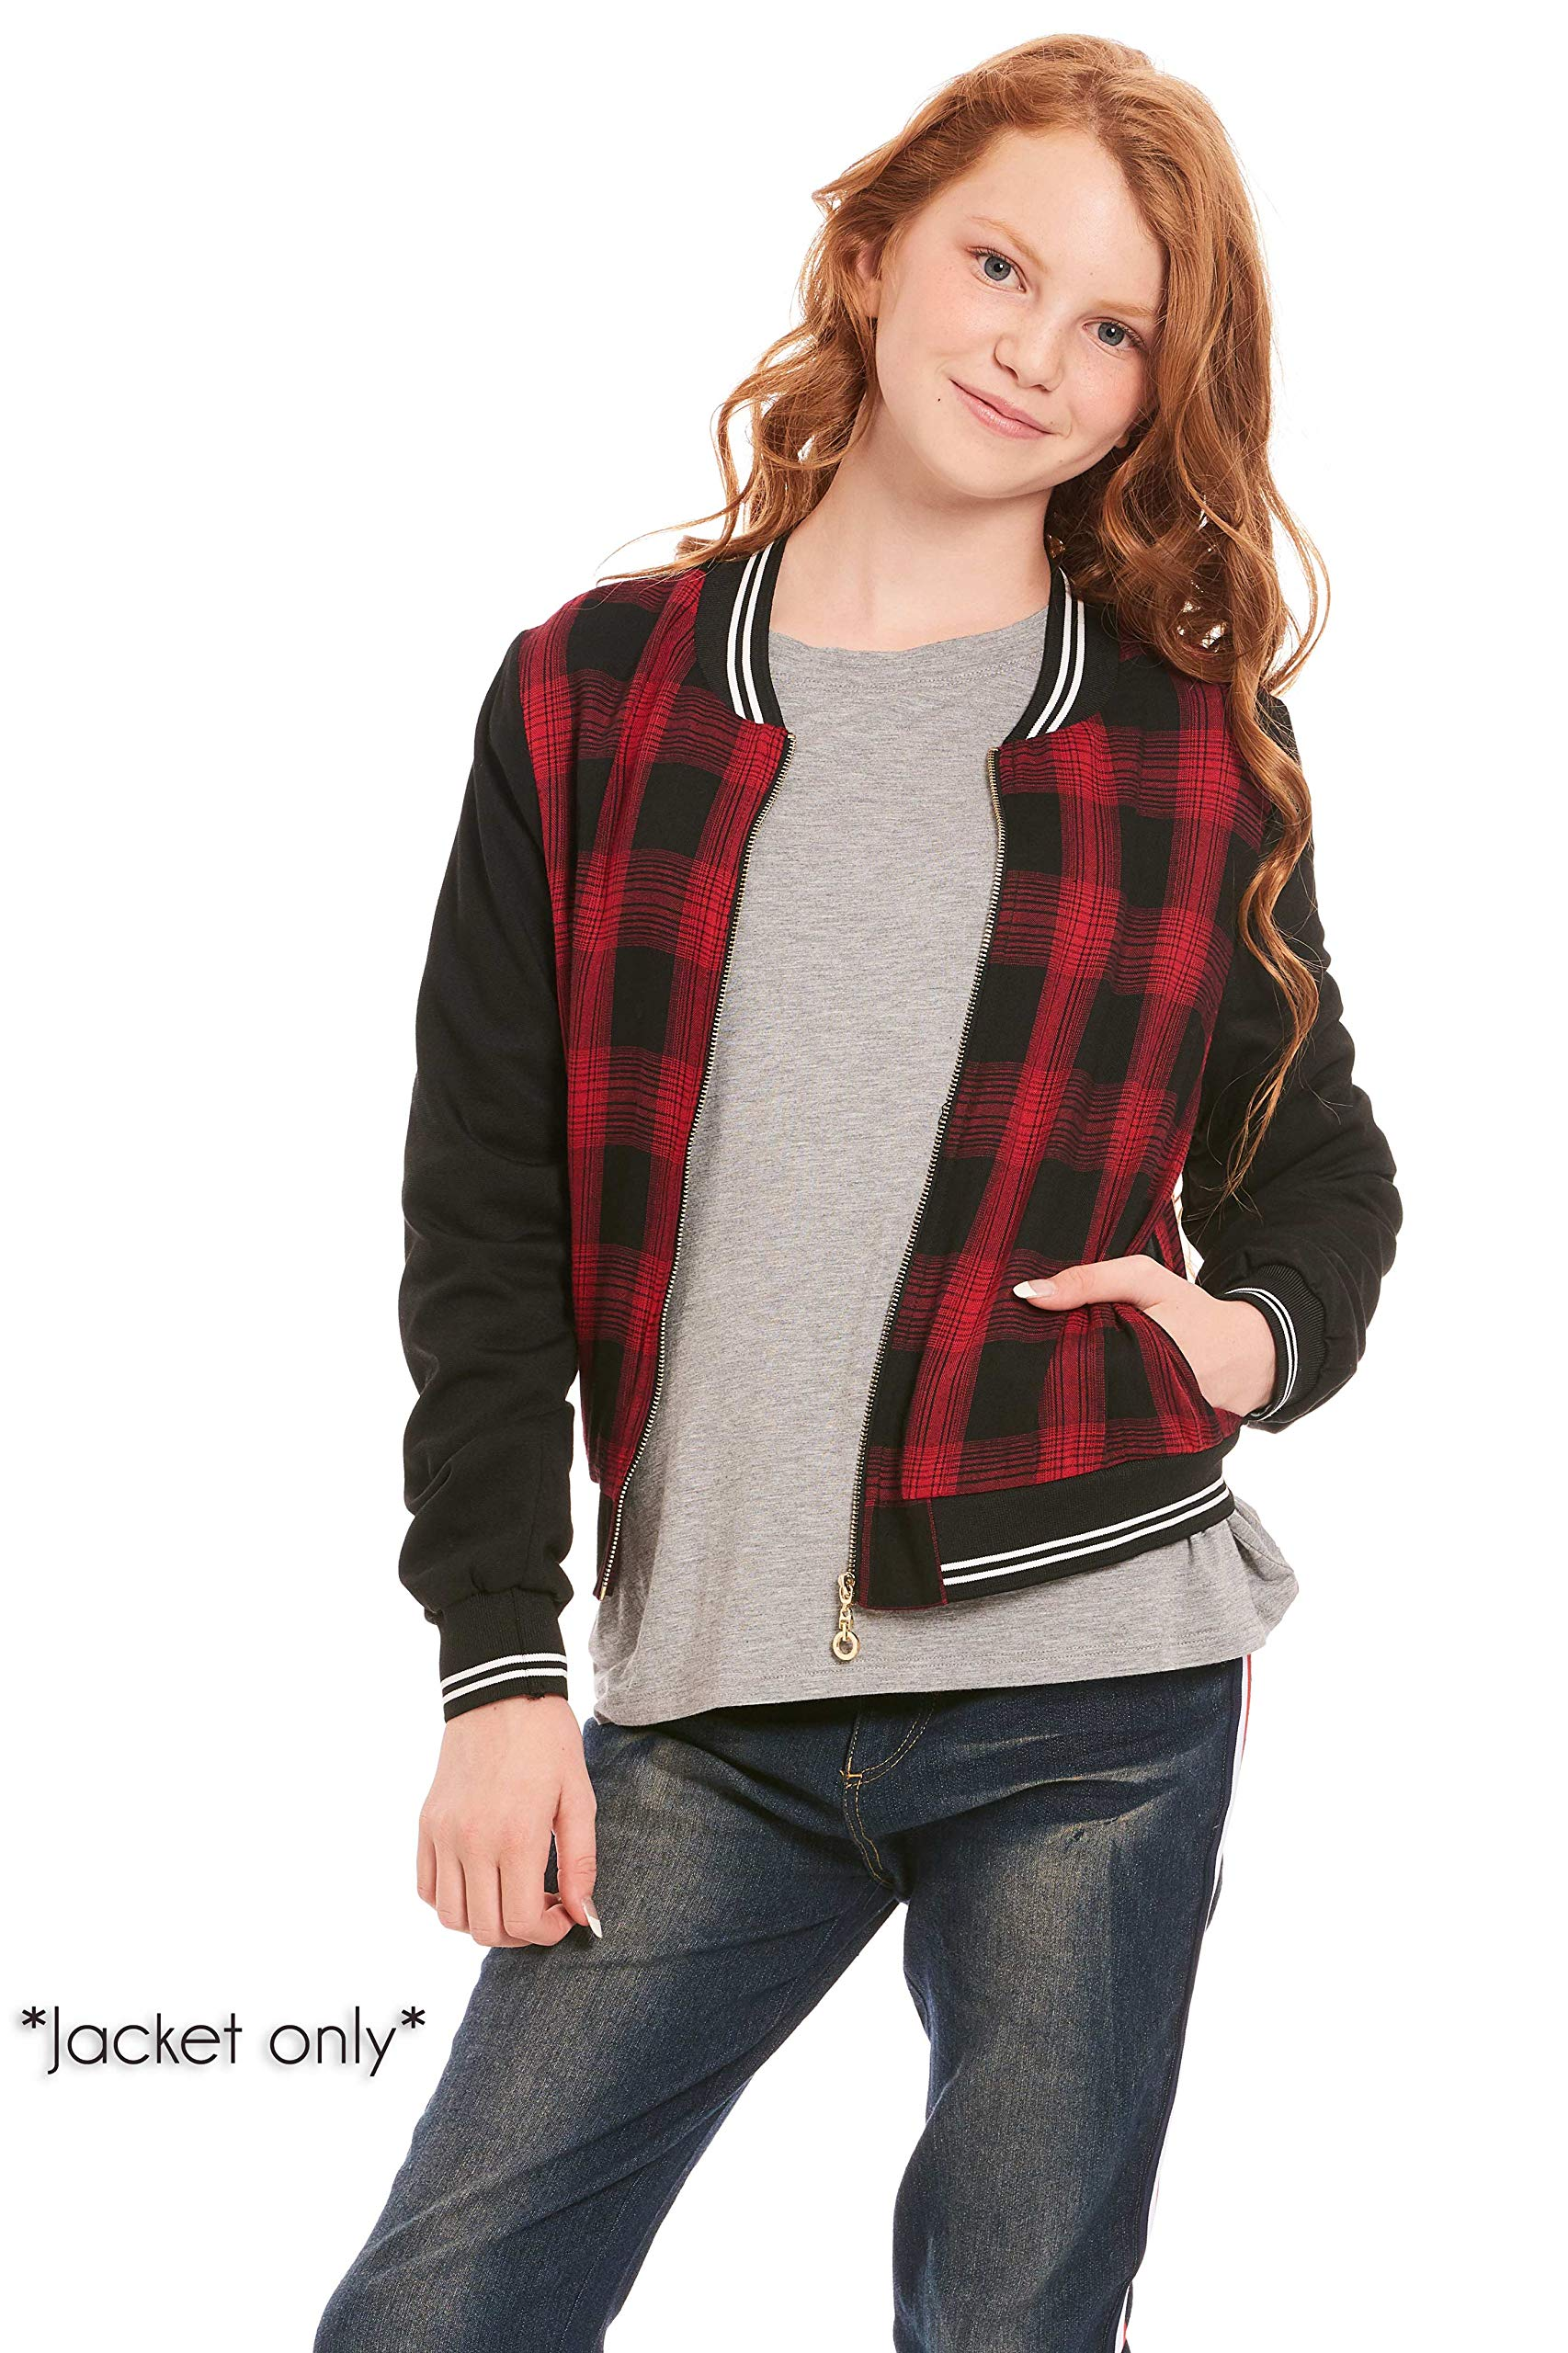 Truly Me, Big Girls Outerwear Jackets, Cardigans, Sweaters (Many Options), 7-16 (8, Red Black Multi)